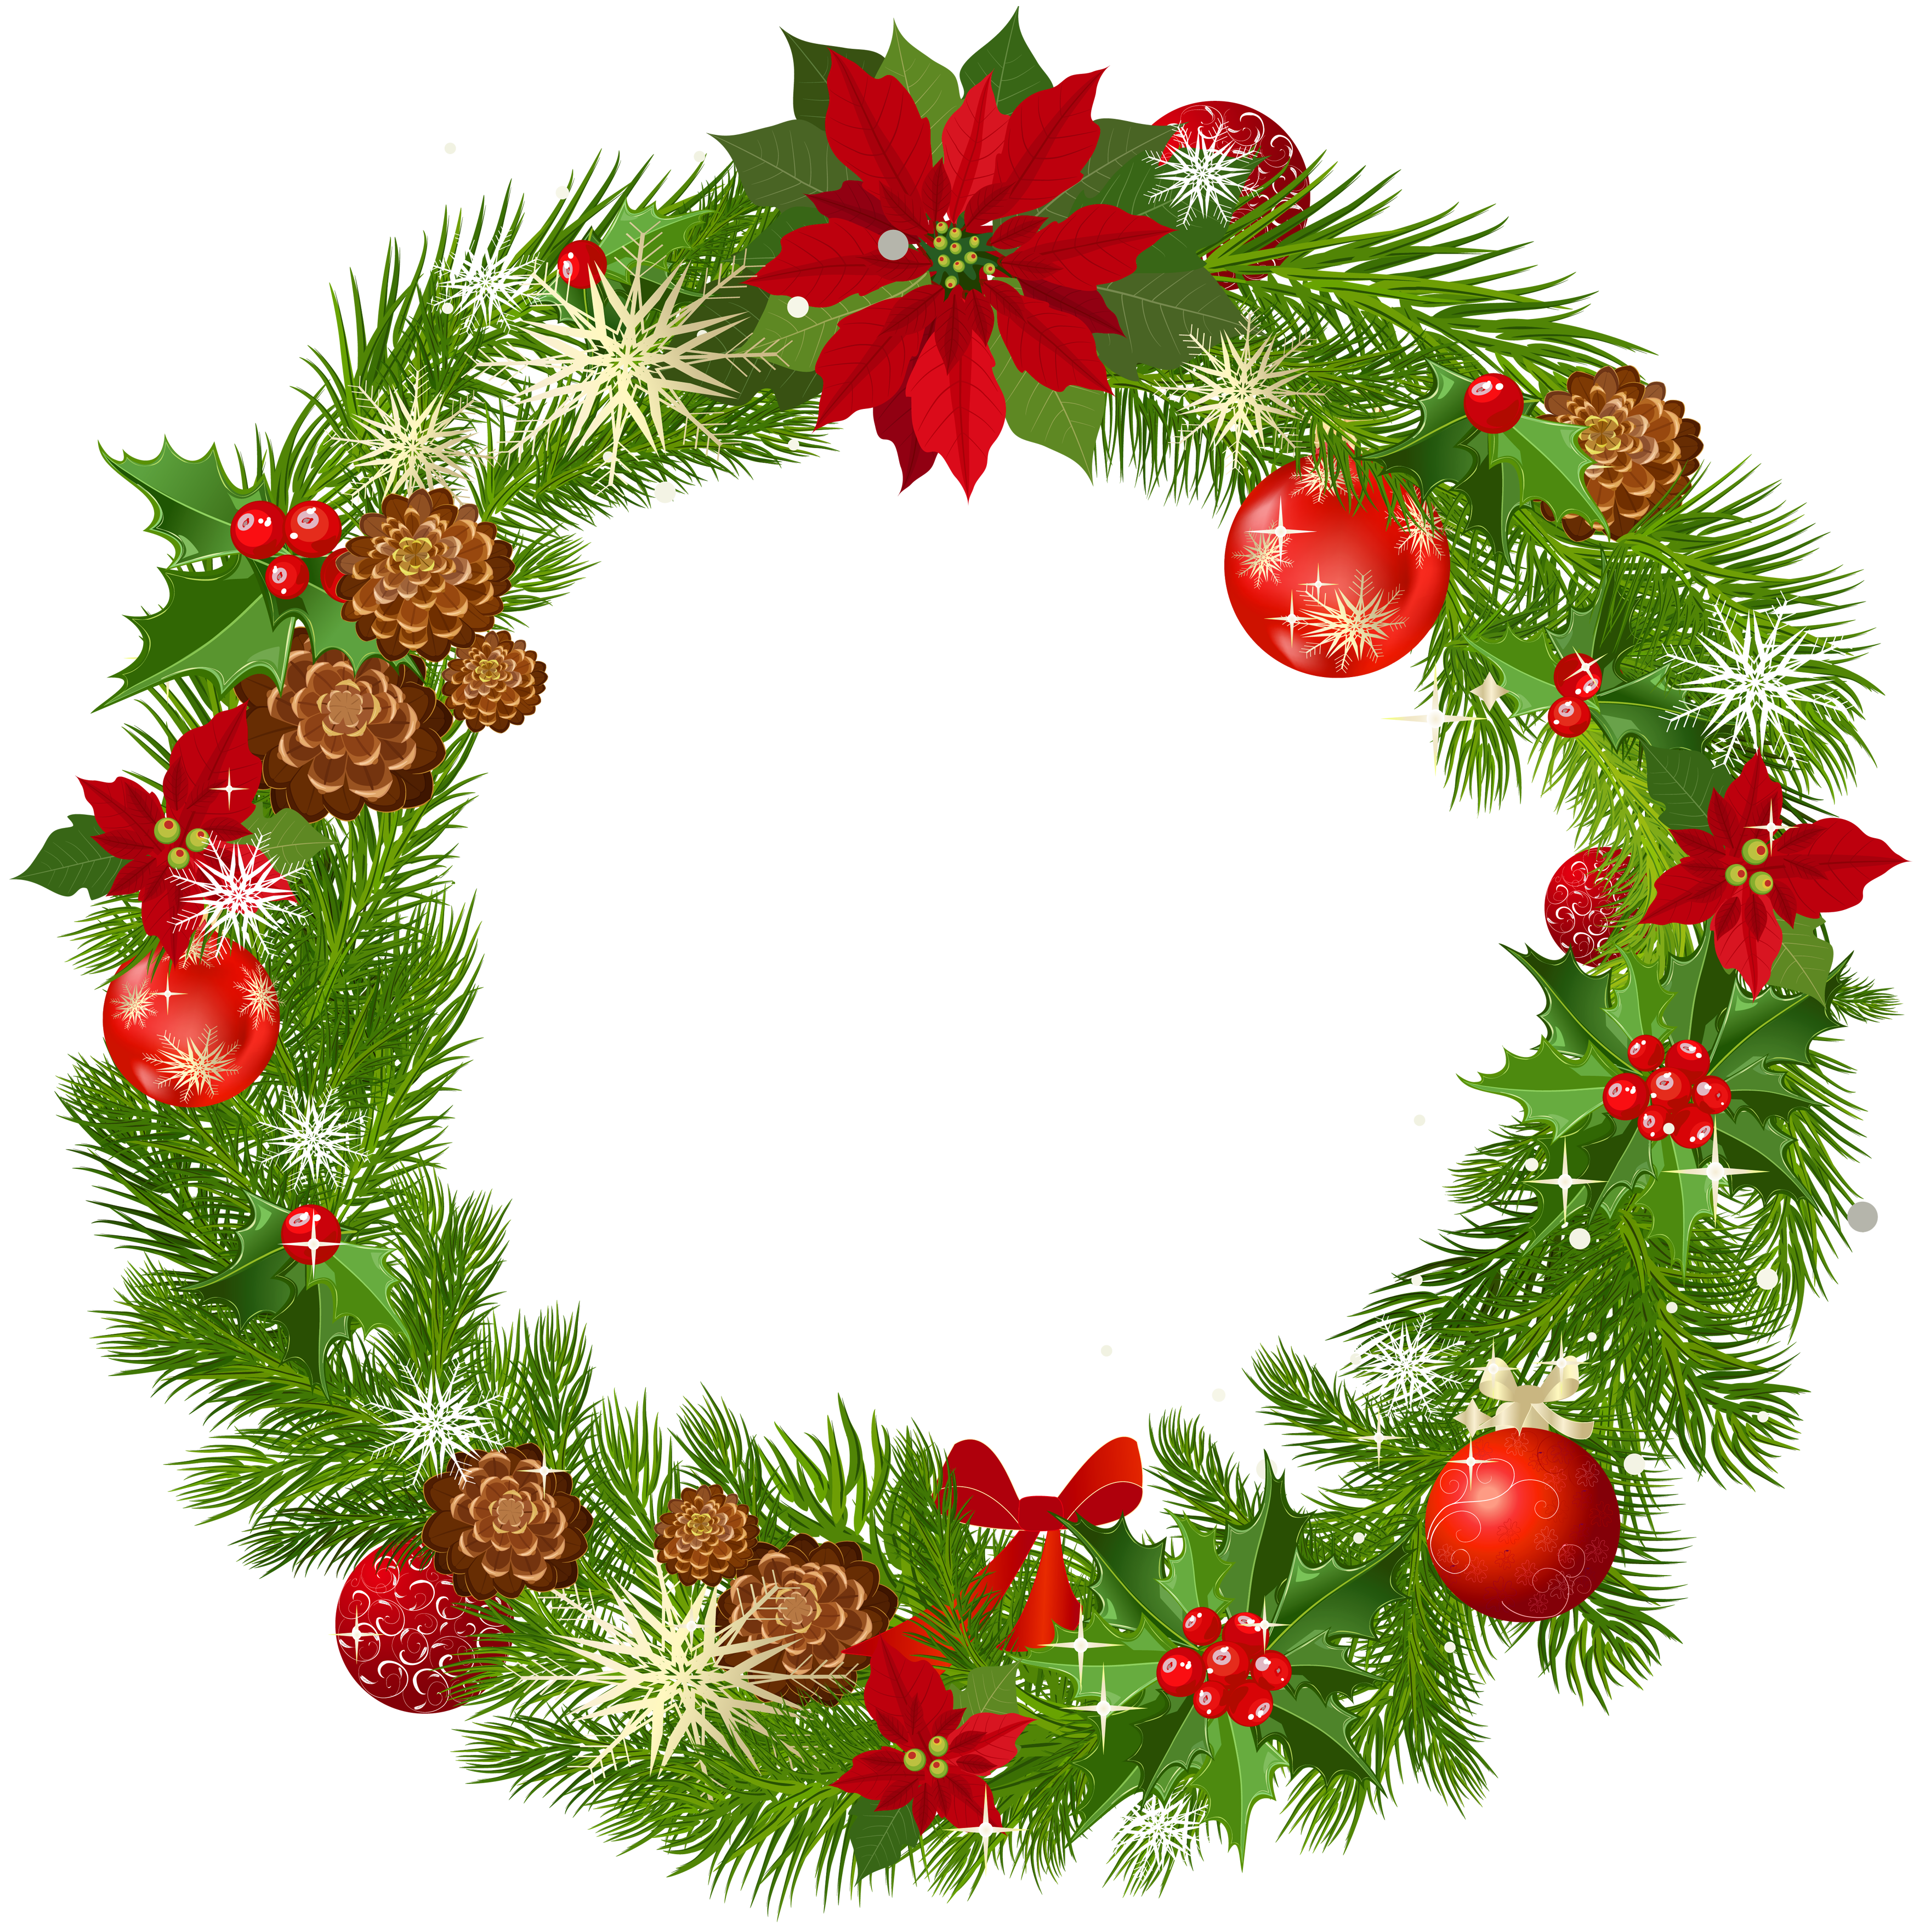 Christmas clipart crown vector library library Xmas Reef   Xmas Ideas 2019   Christmas wreaths, Xmas wreaths, Christmas vector library library